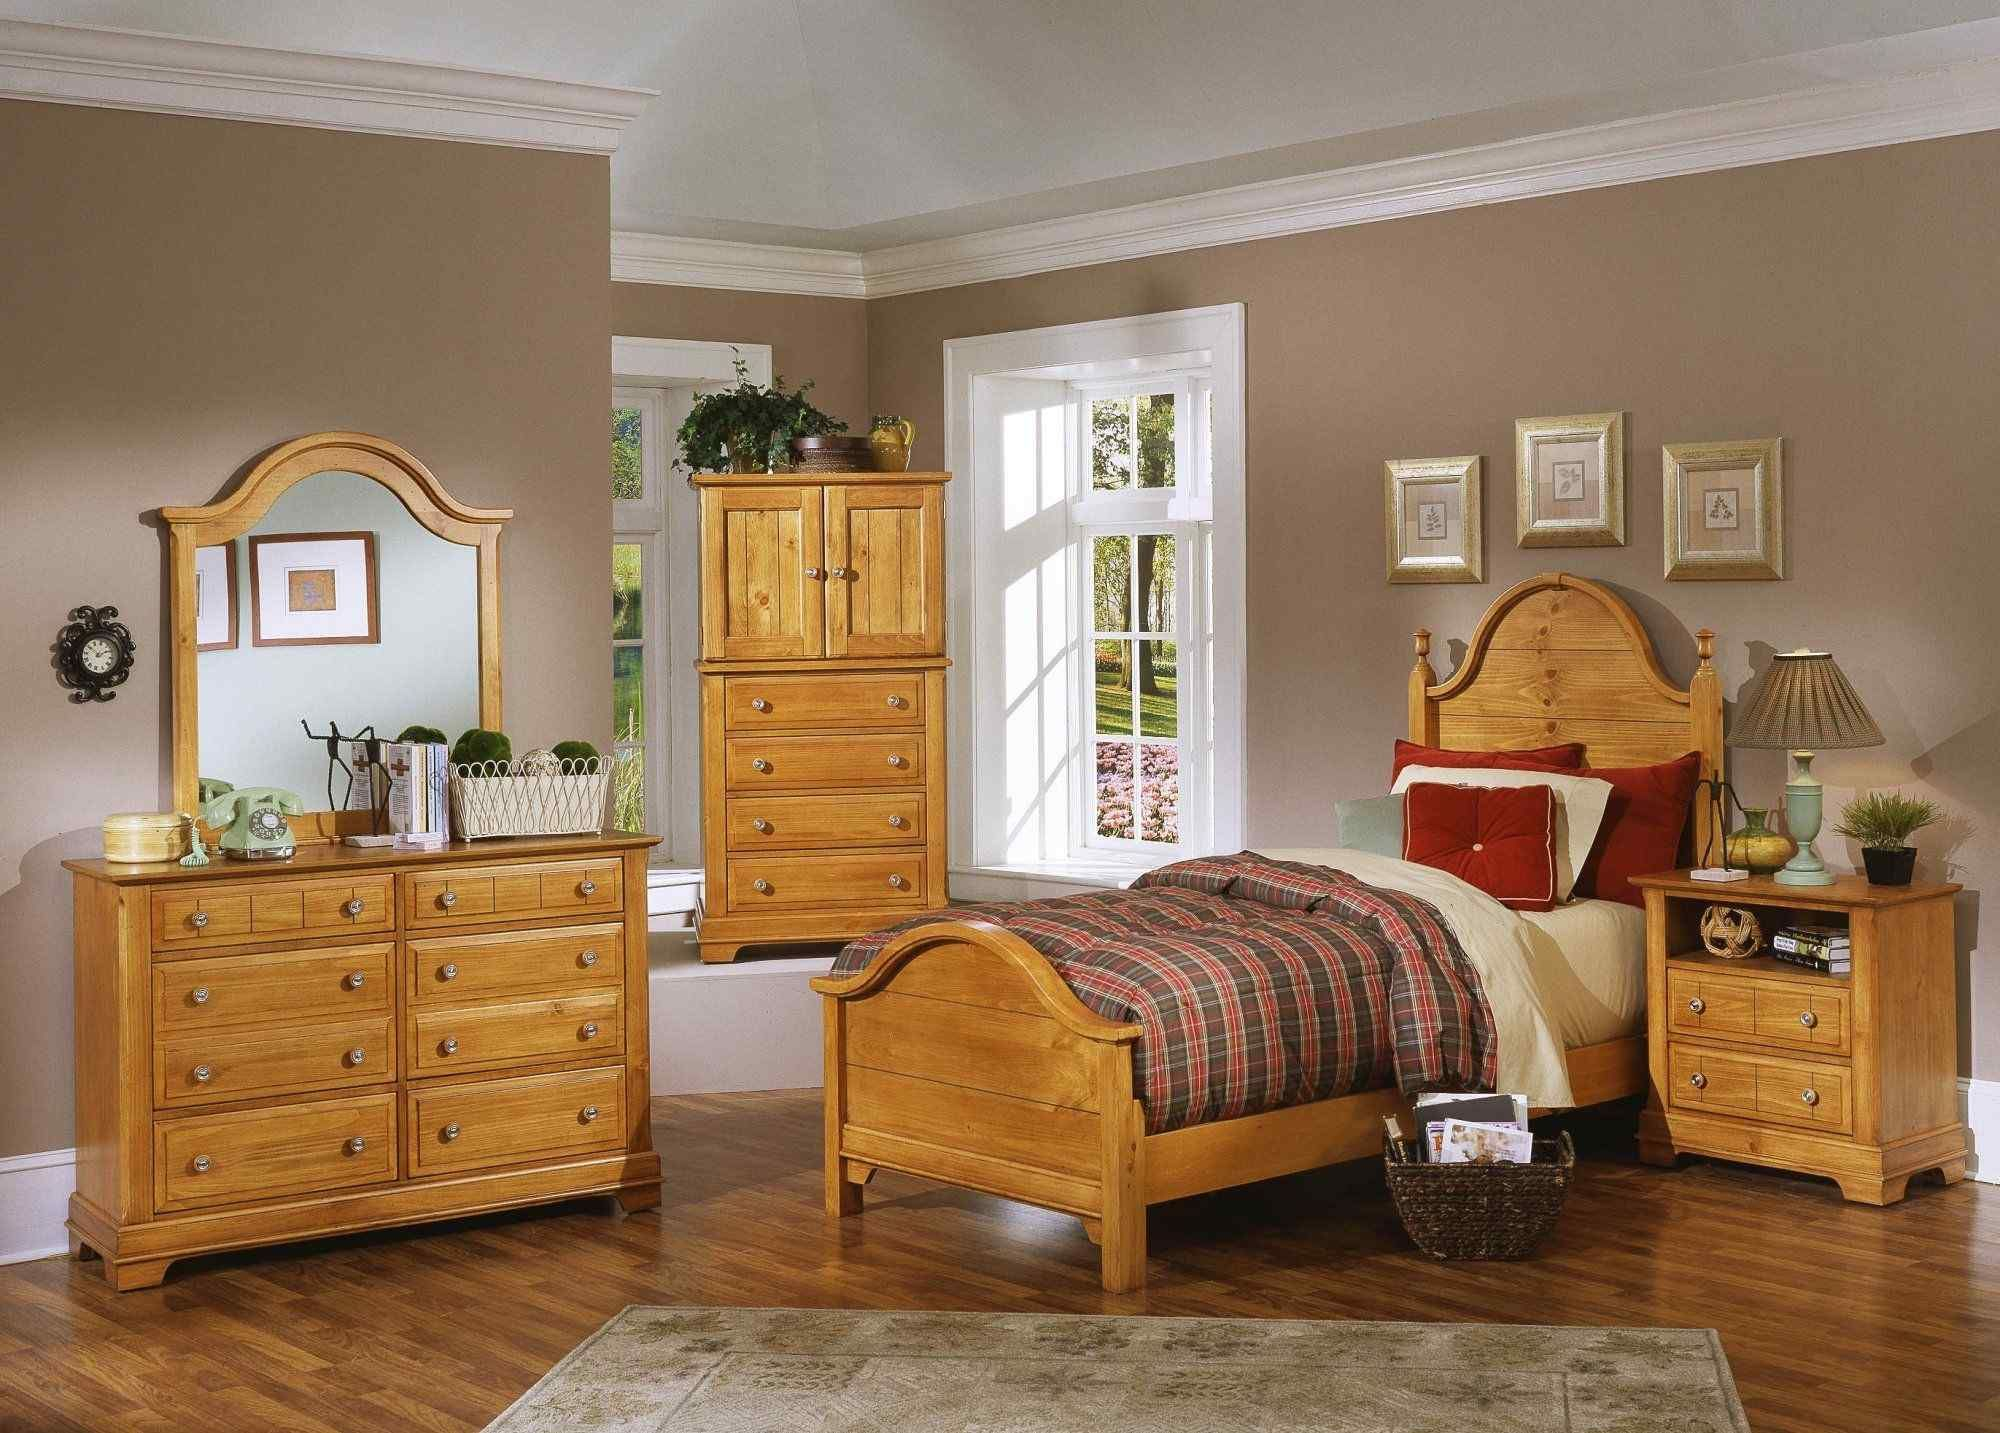 Cheap Bedroom Furniture Sets Near Me in 2020 | Discount ...